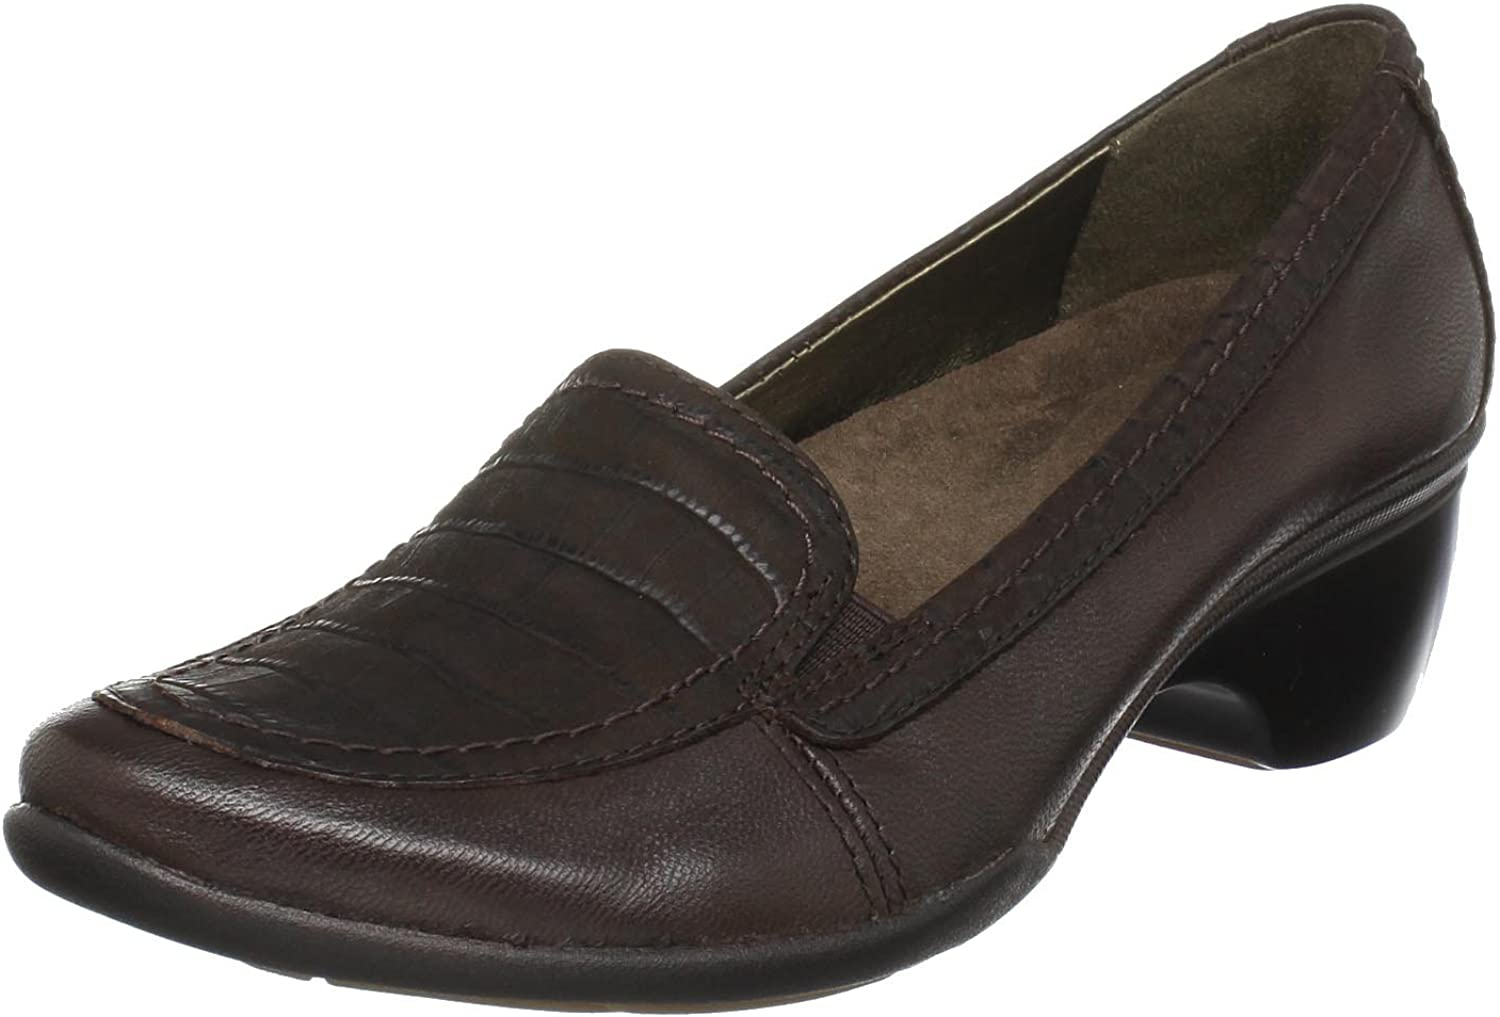 Hush Puppies Woherren Majestic Loafer Pump